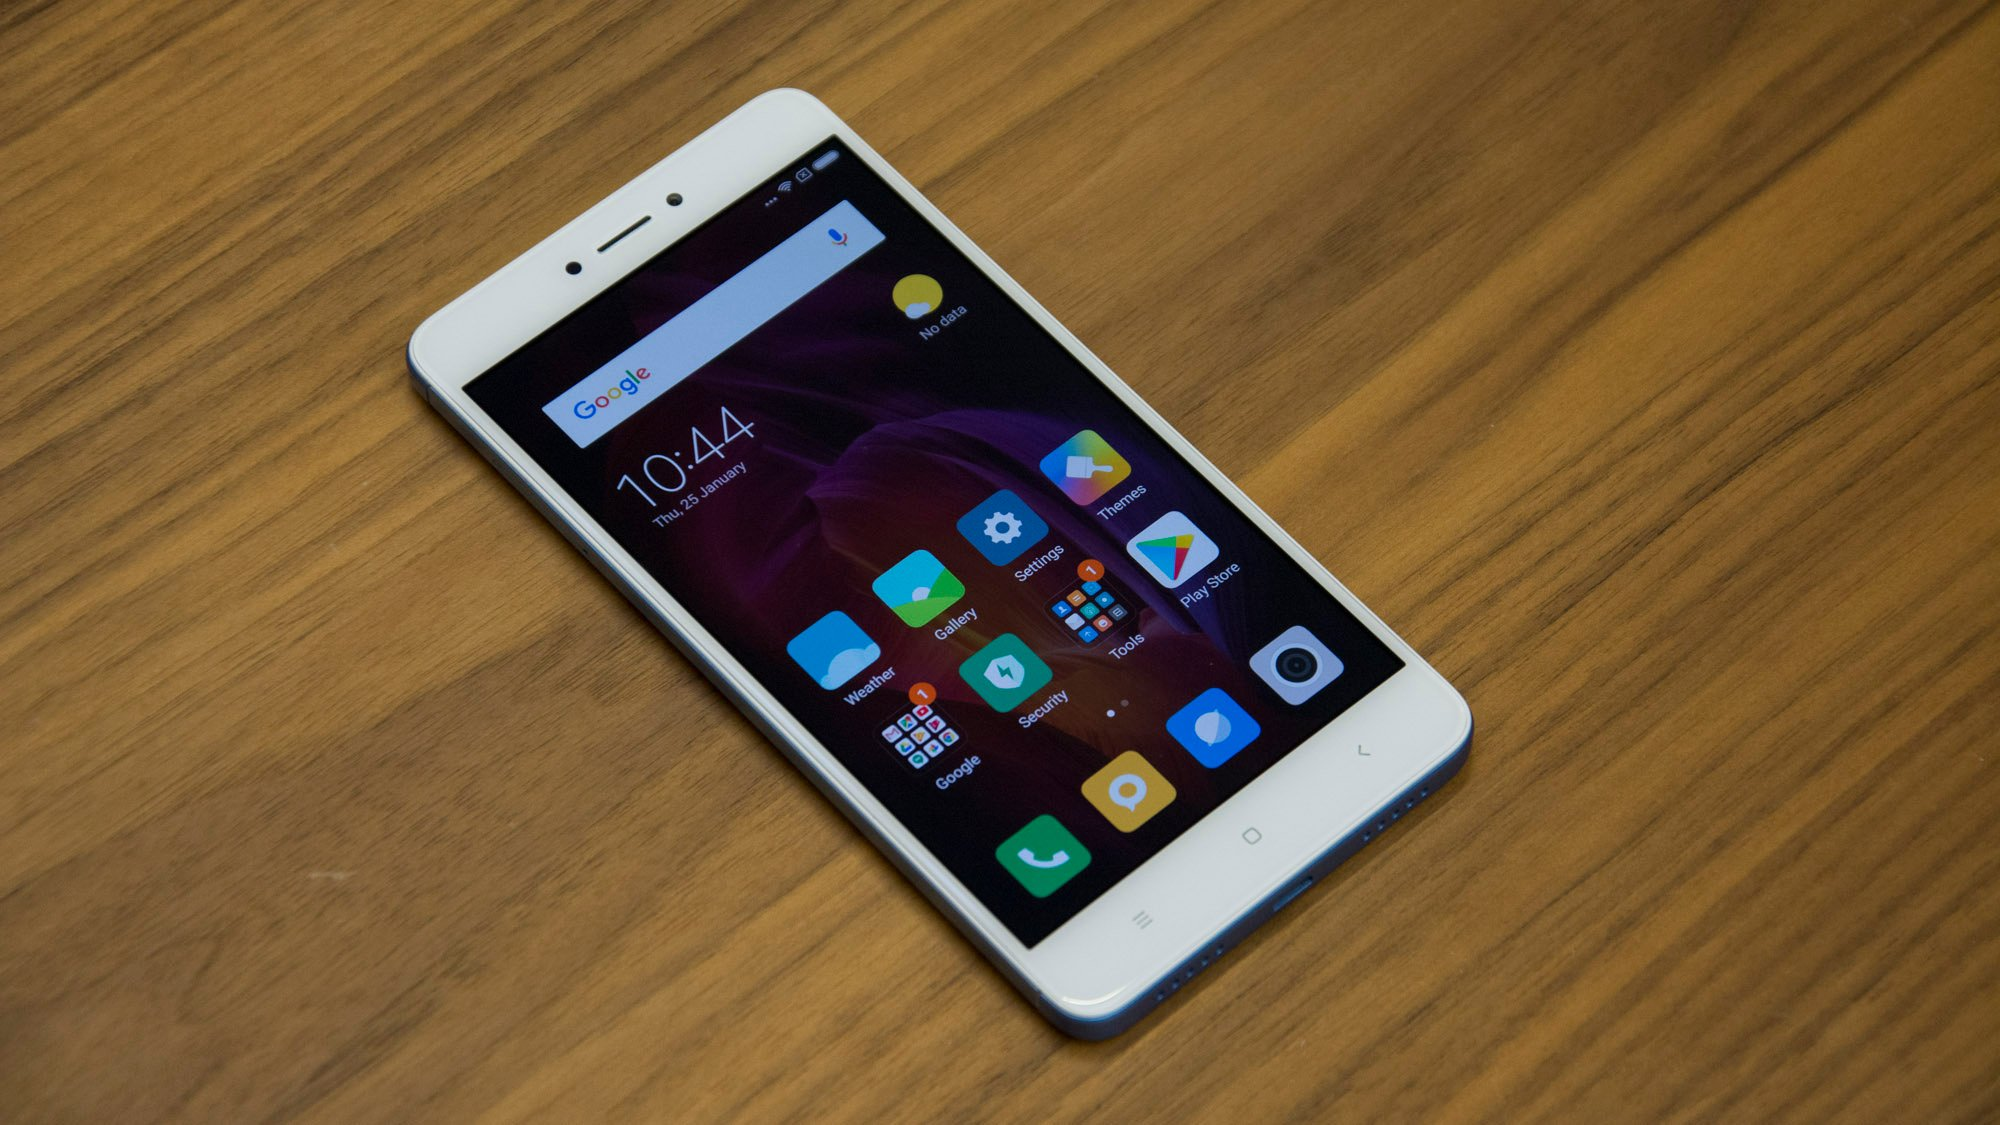 Xiaomi Redmi Note 4x Review The New 150 Smartphone King Expert Ram 3gb 32gb In This Mode Screen Achieved A Higher Peak Brightness Level Of 449cd M2 As Opposed To 392cd Standard And Though Srgb Coverage